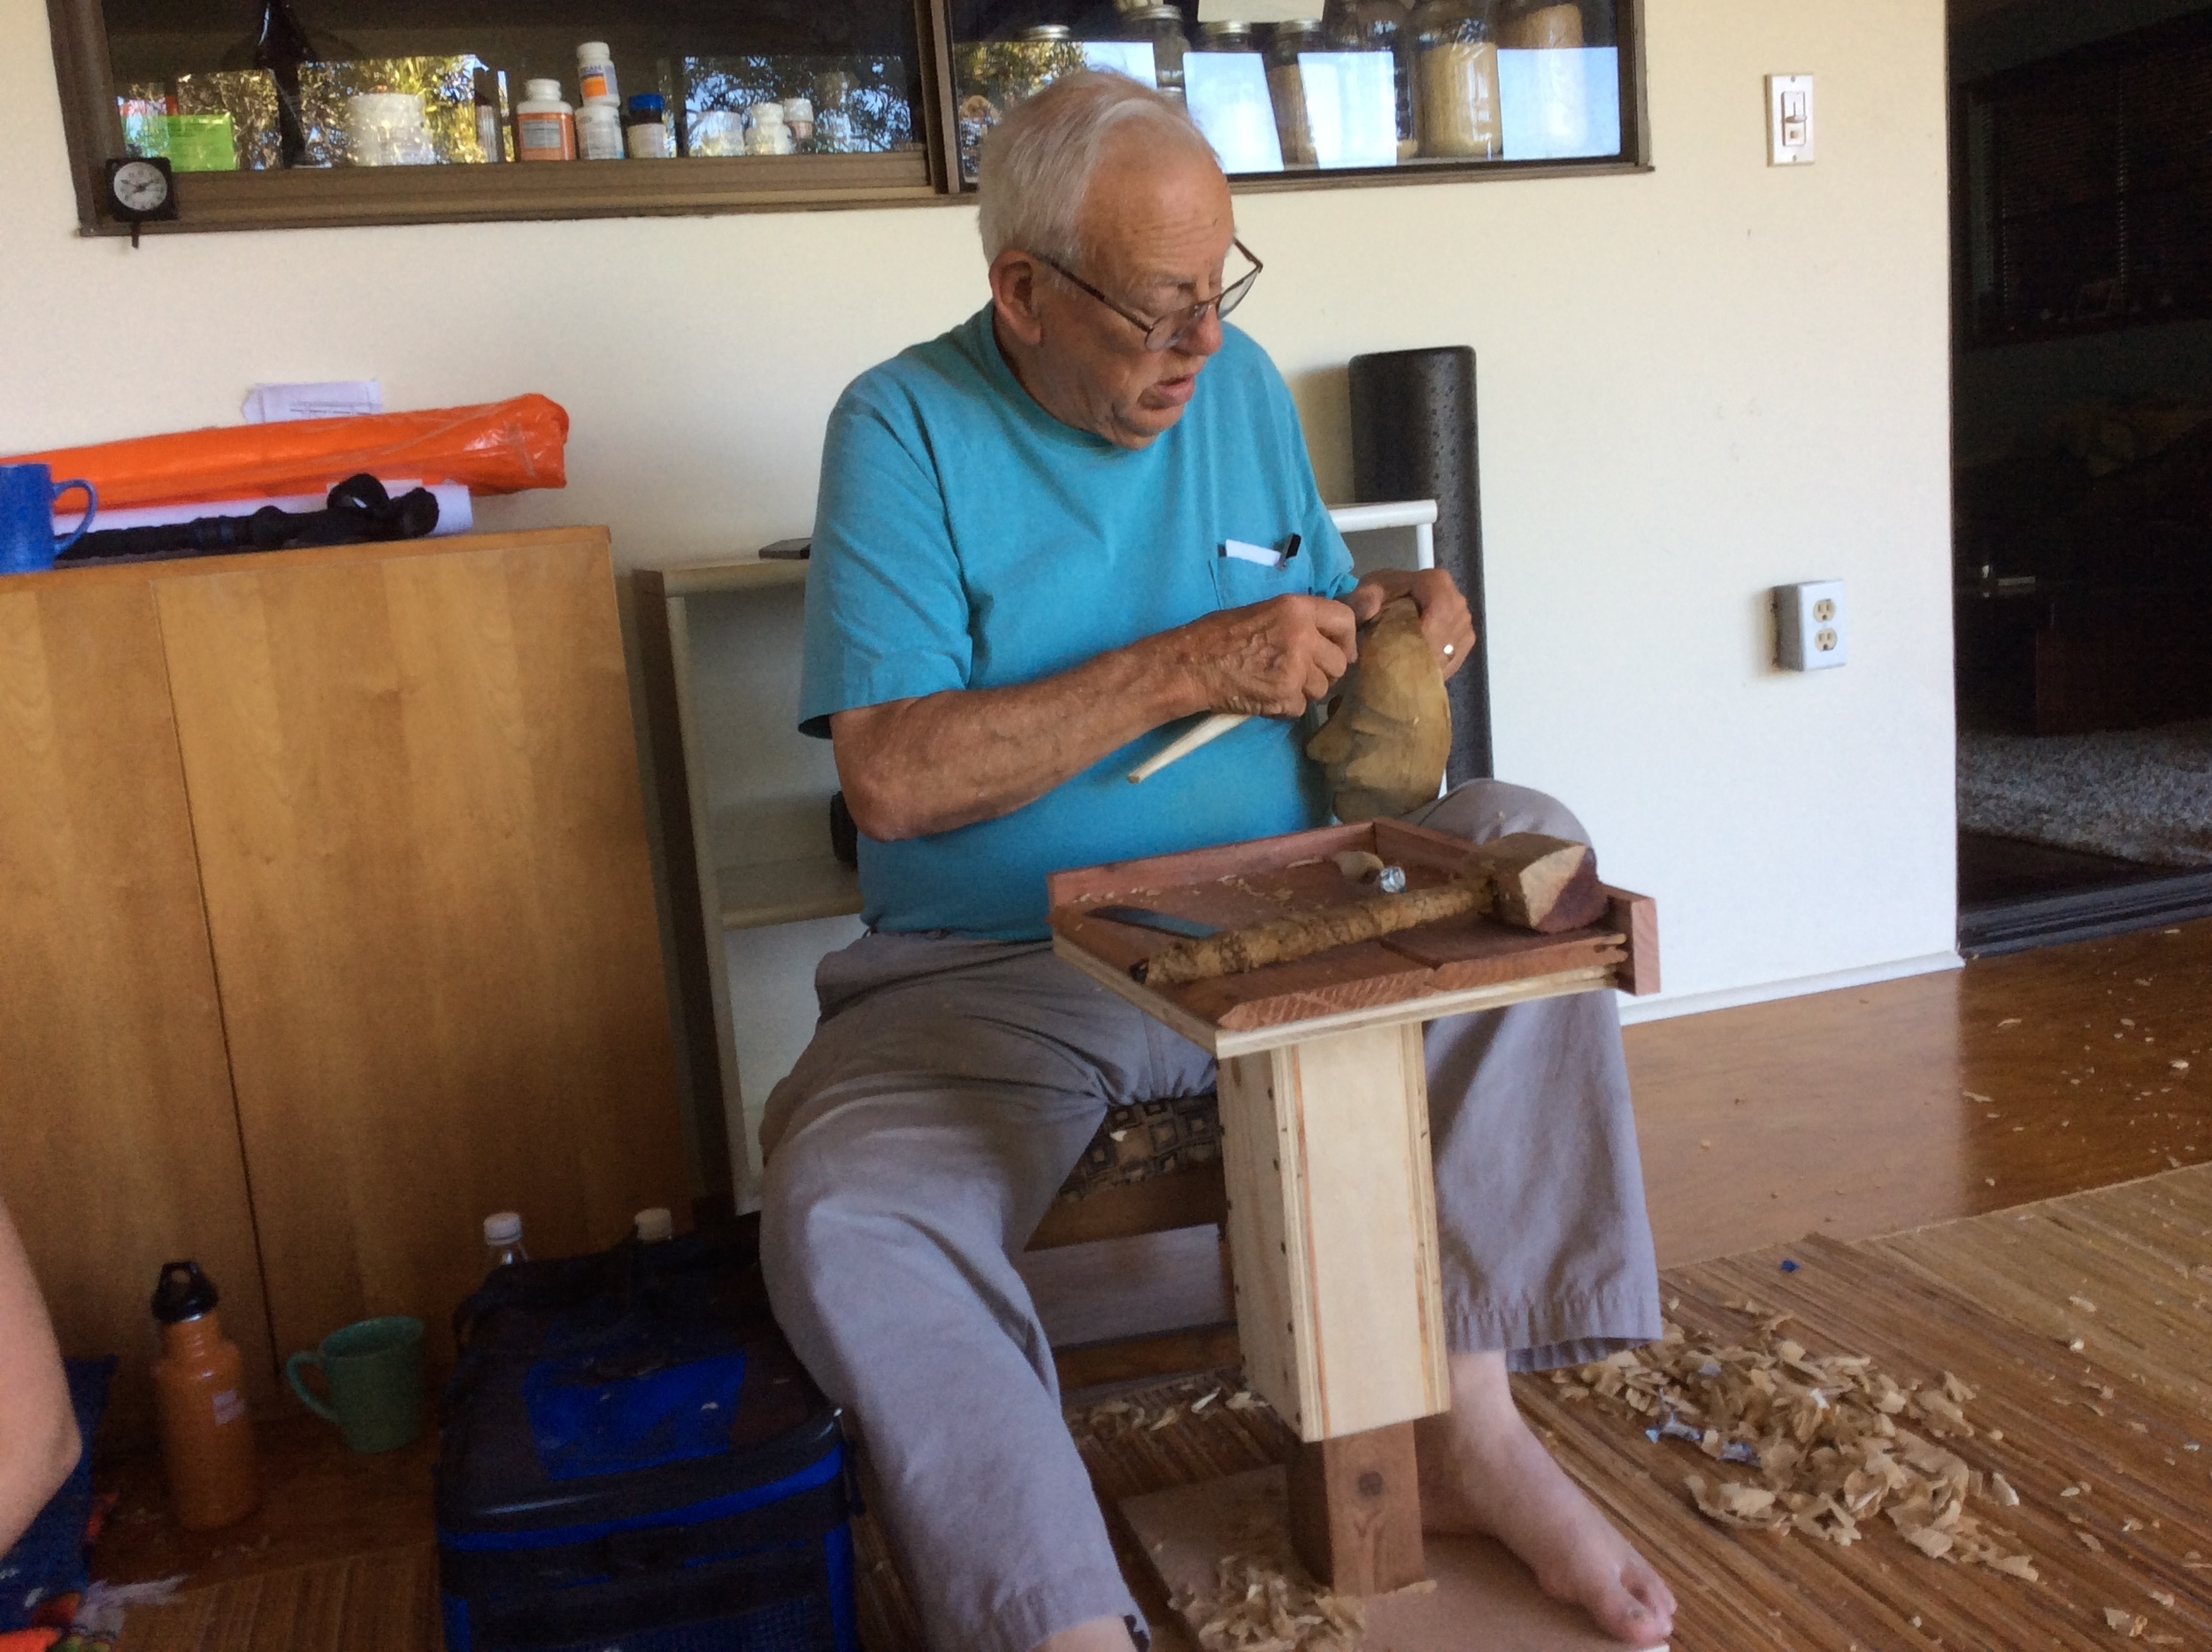 This year I came up with a portable and adjustable workbench that allowed some of the carvers to successfully work sitting on a chair rather than sitting on the floor in the traditional Balinese style.